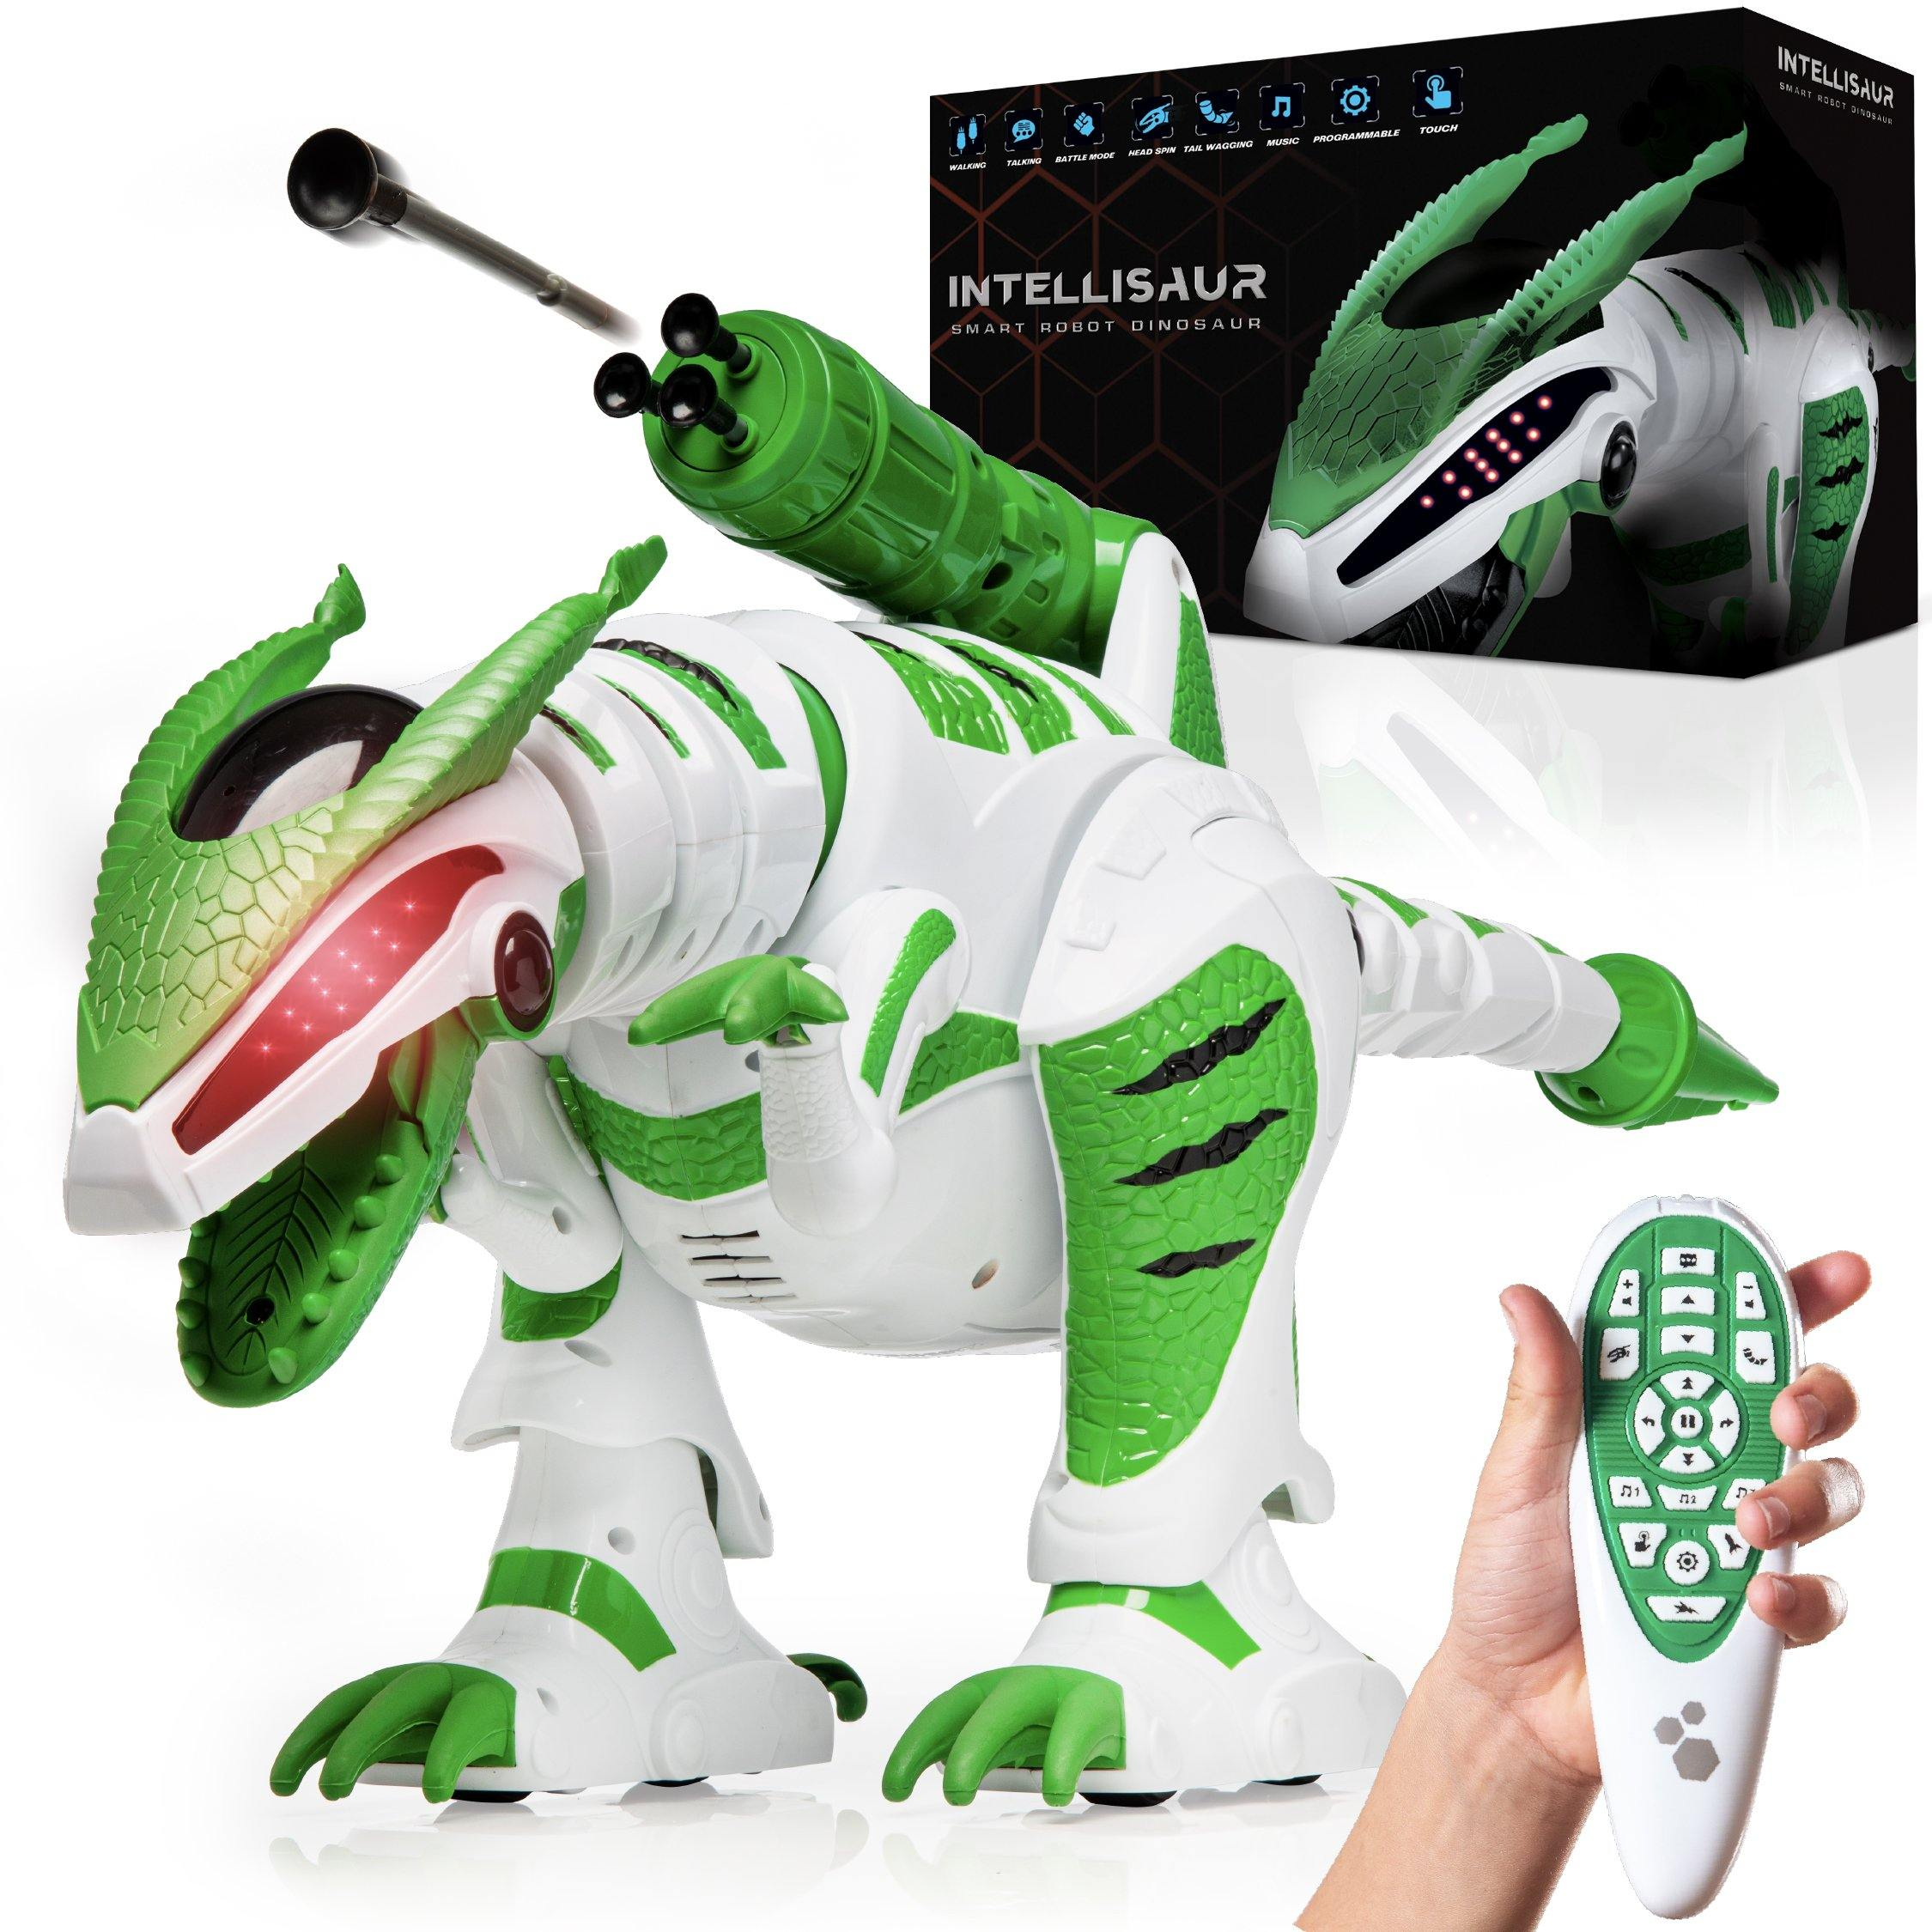 Intellisaur Dinosaur Robot Toy